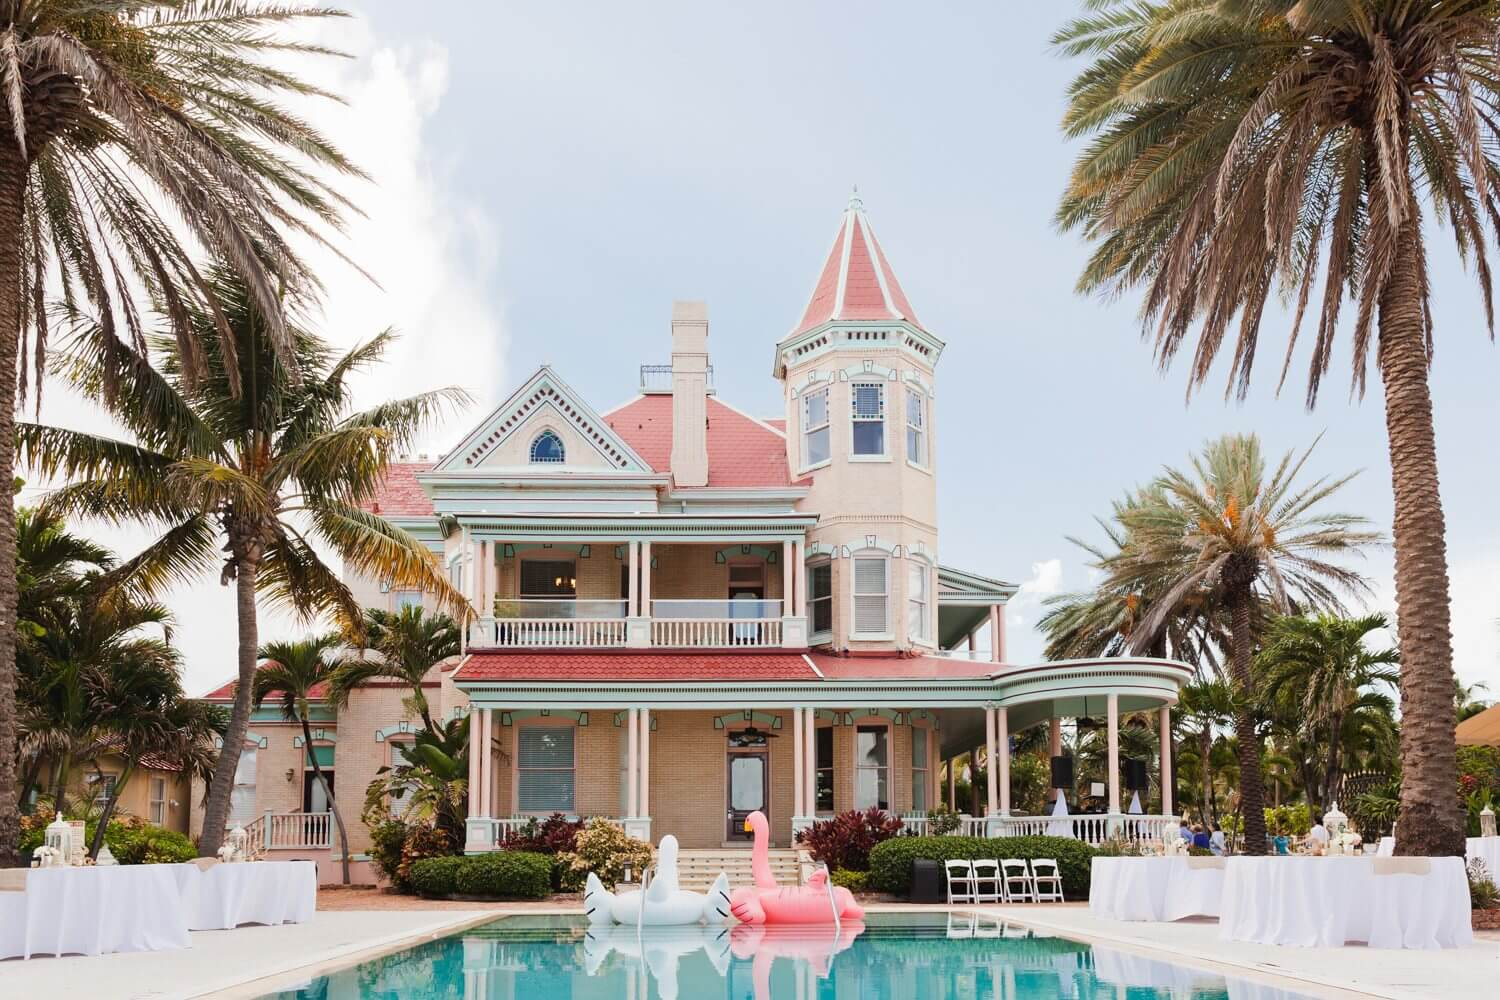 Freas Photography Southernmost House Wedding 66 - Boho Styled Key West Wedding at the Southernmost House in Key West, Florida